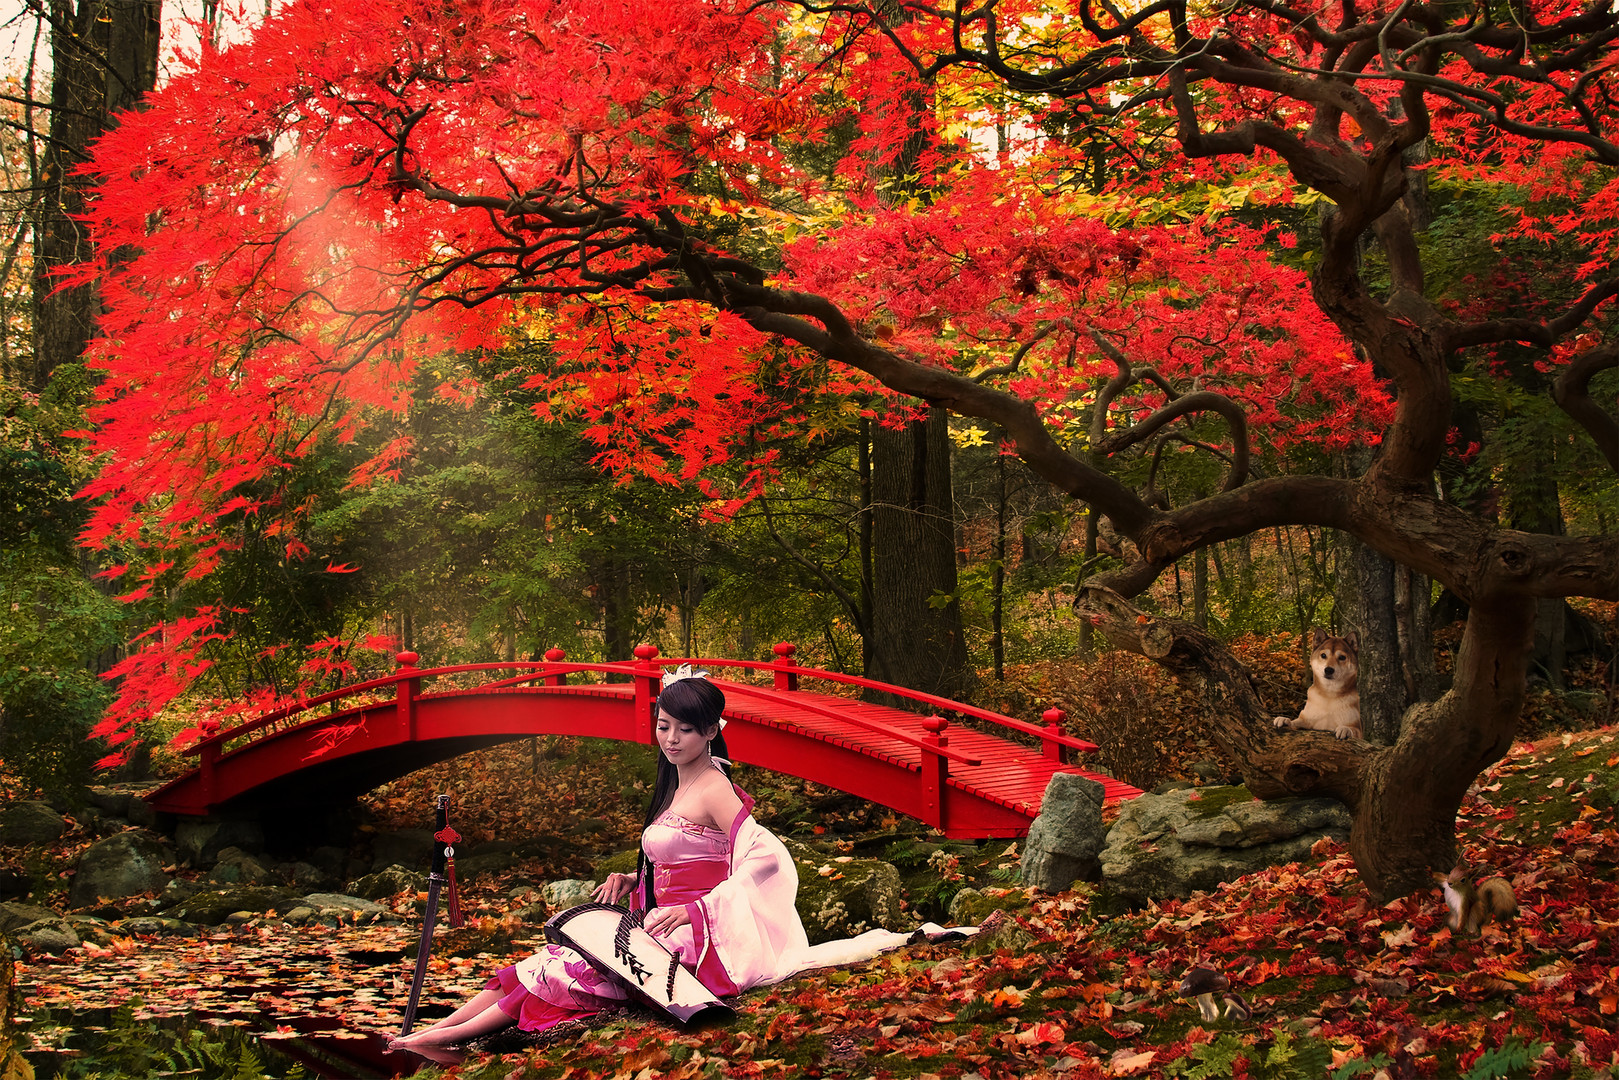 Gold and Red Autumn floating in the Koto Music